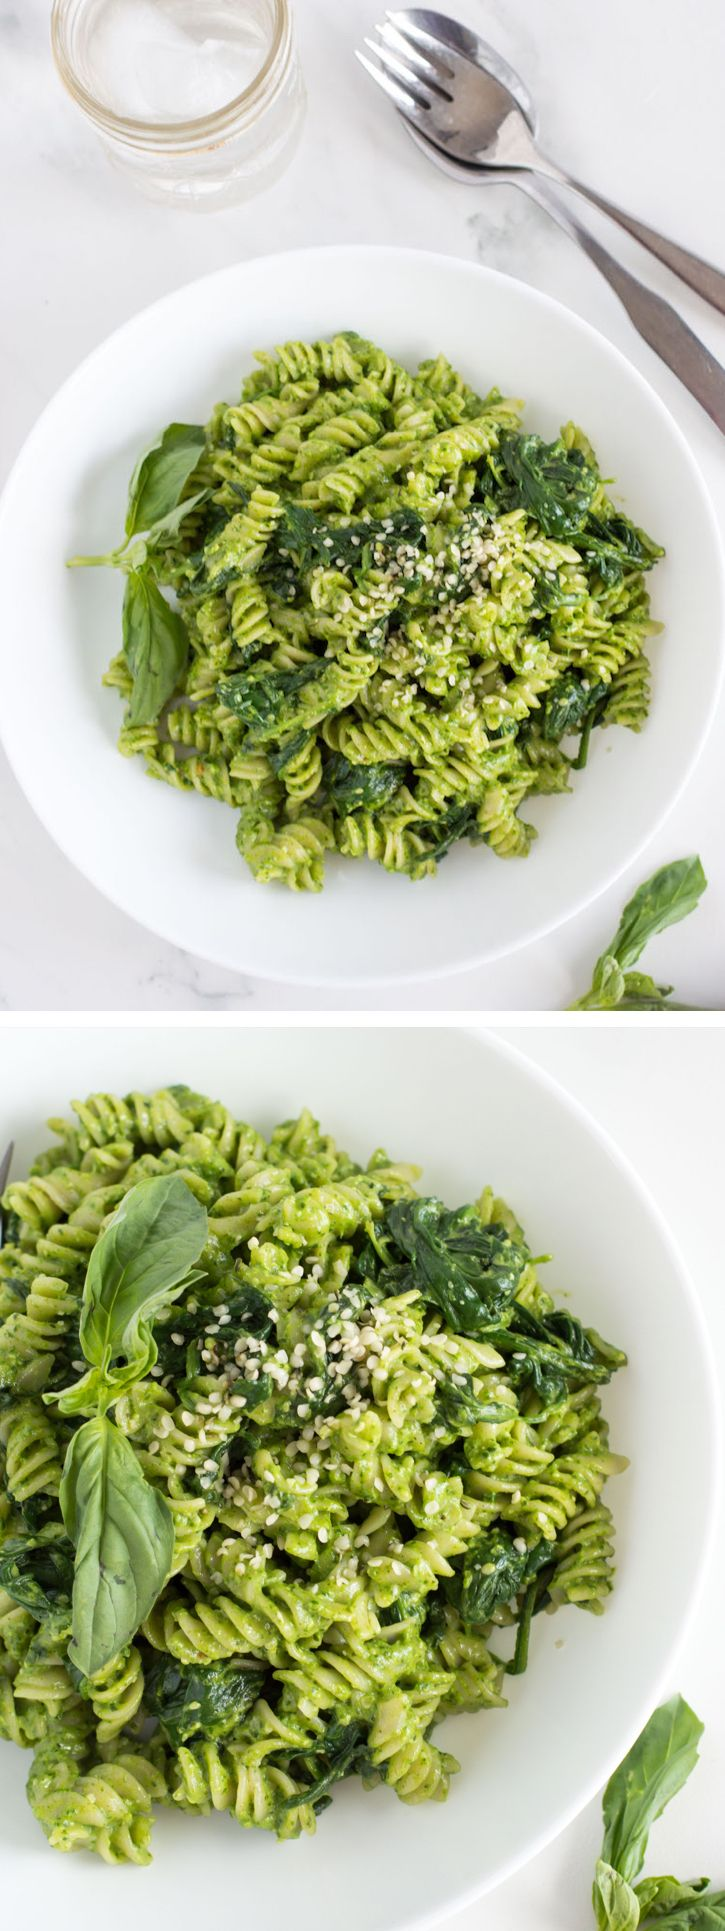 Spinach Pesto Pasta with Basil and Goat Cheese | nourishedtheblog.com | A super simple yet delicious Spinach Pesto Pasta with Basil and Goat Cheese recipe made gluten free and vegetarian friendly with spinach, basil, lemon, garlic and goat cheese. Click for the recipe!